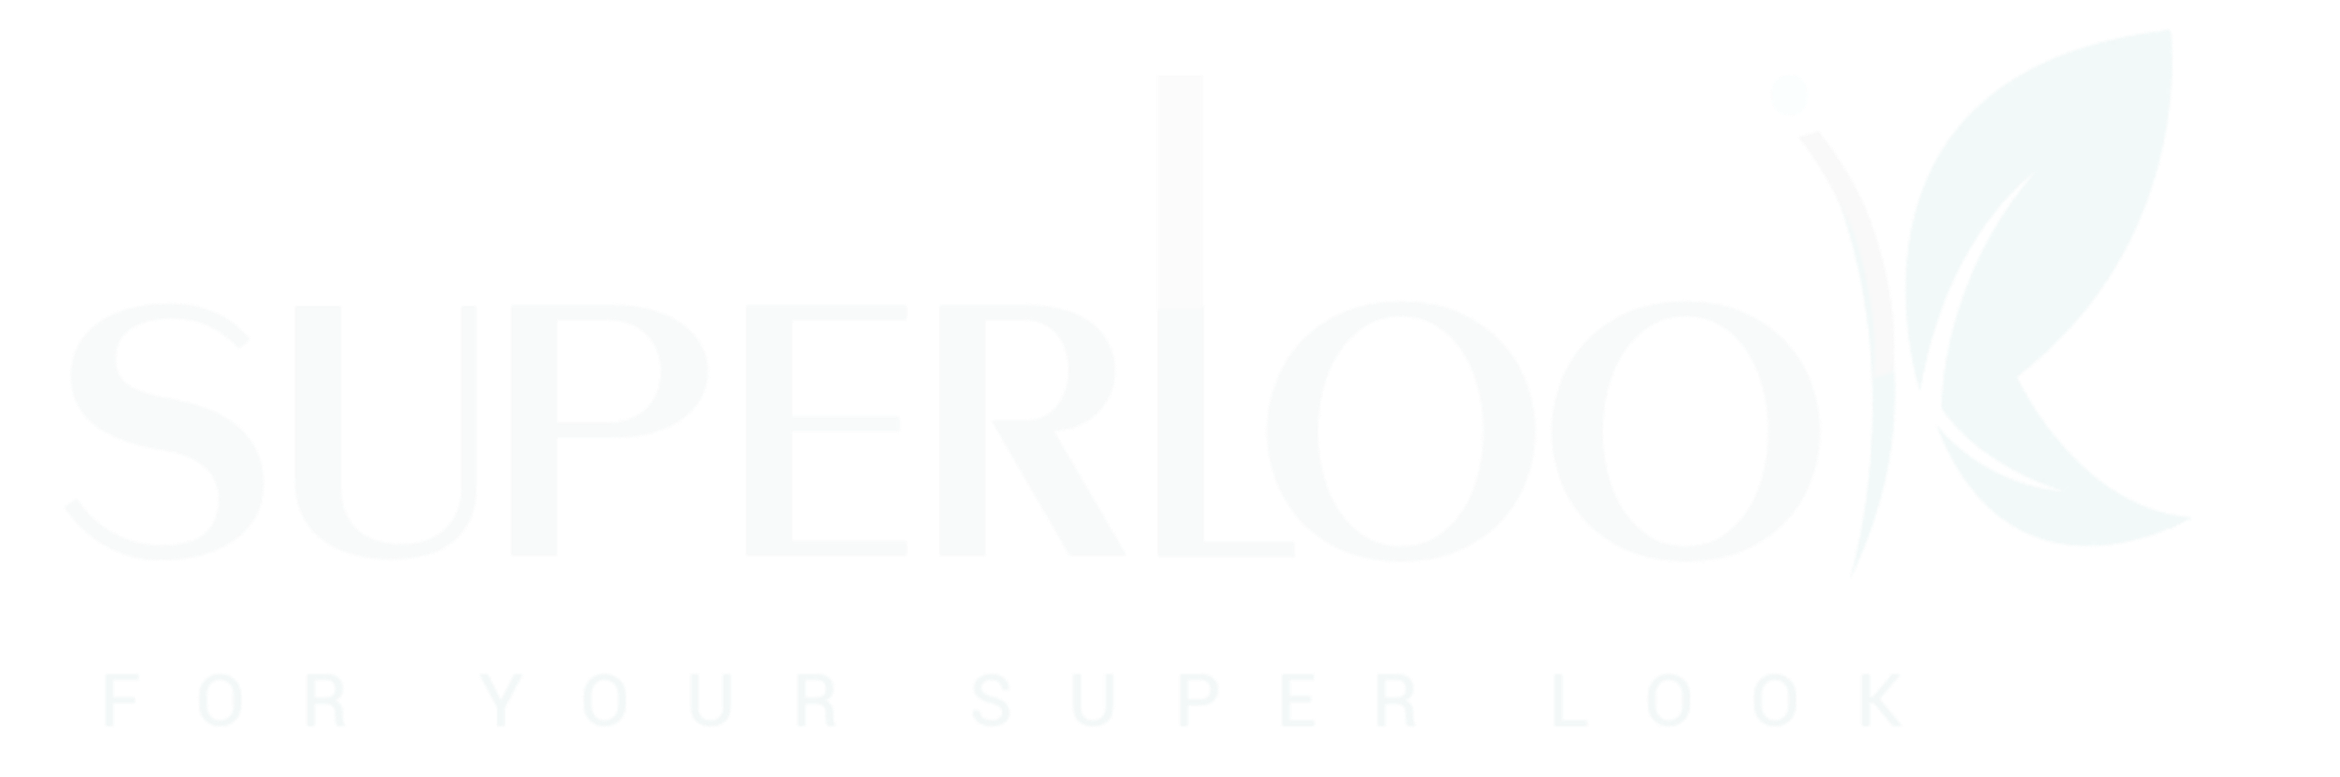 Superlook Beauty Products